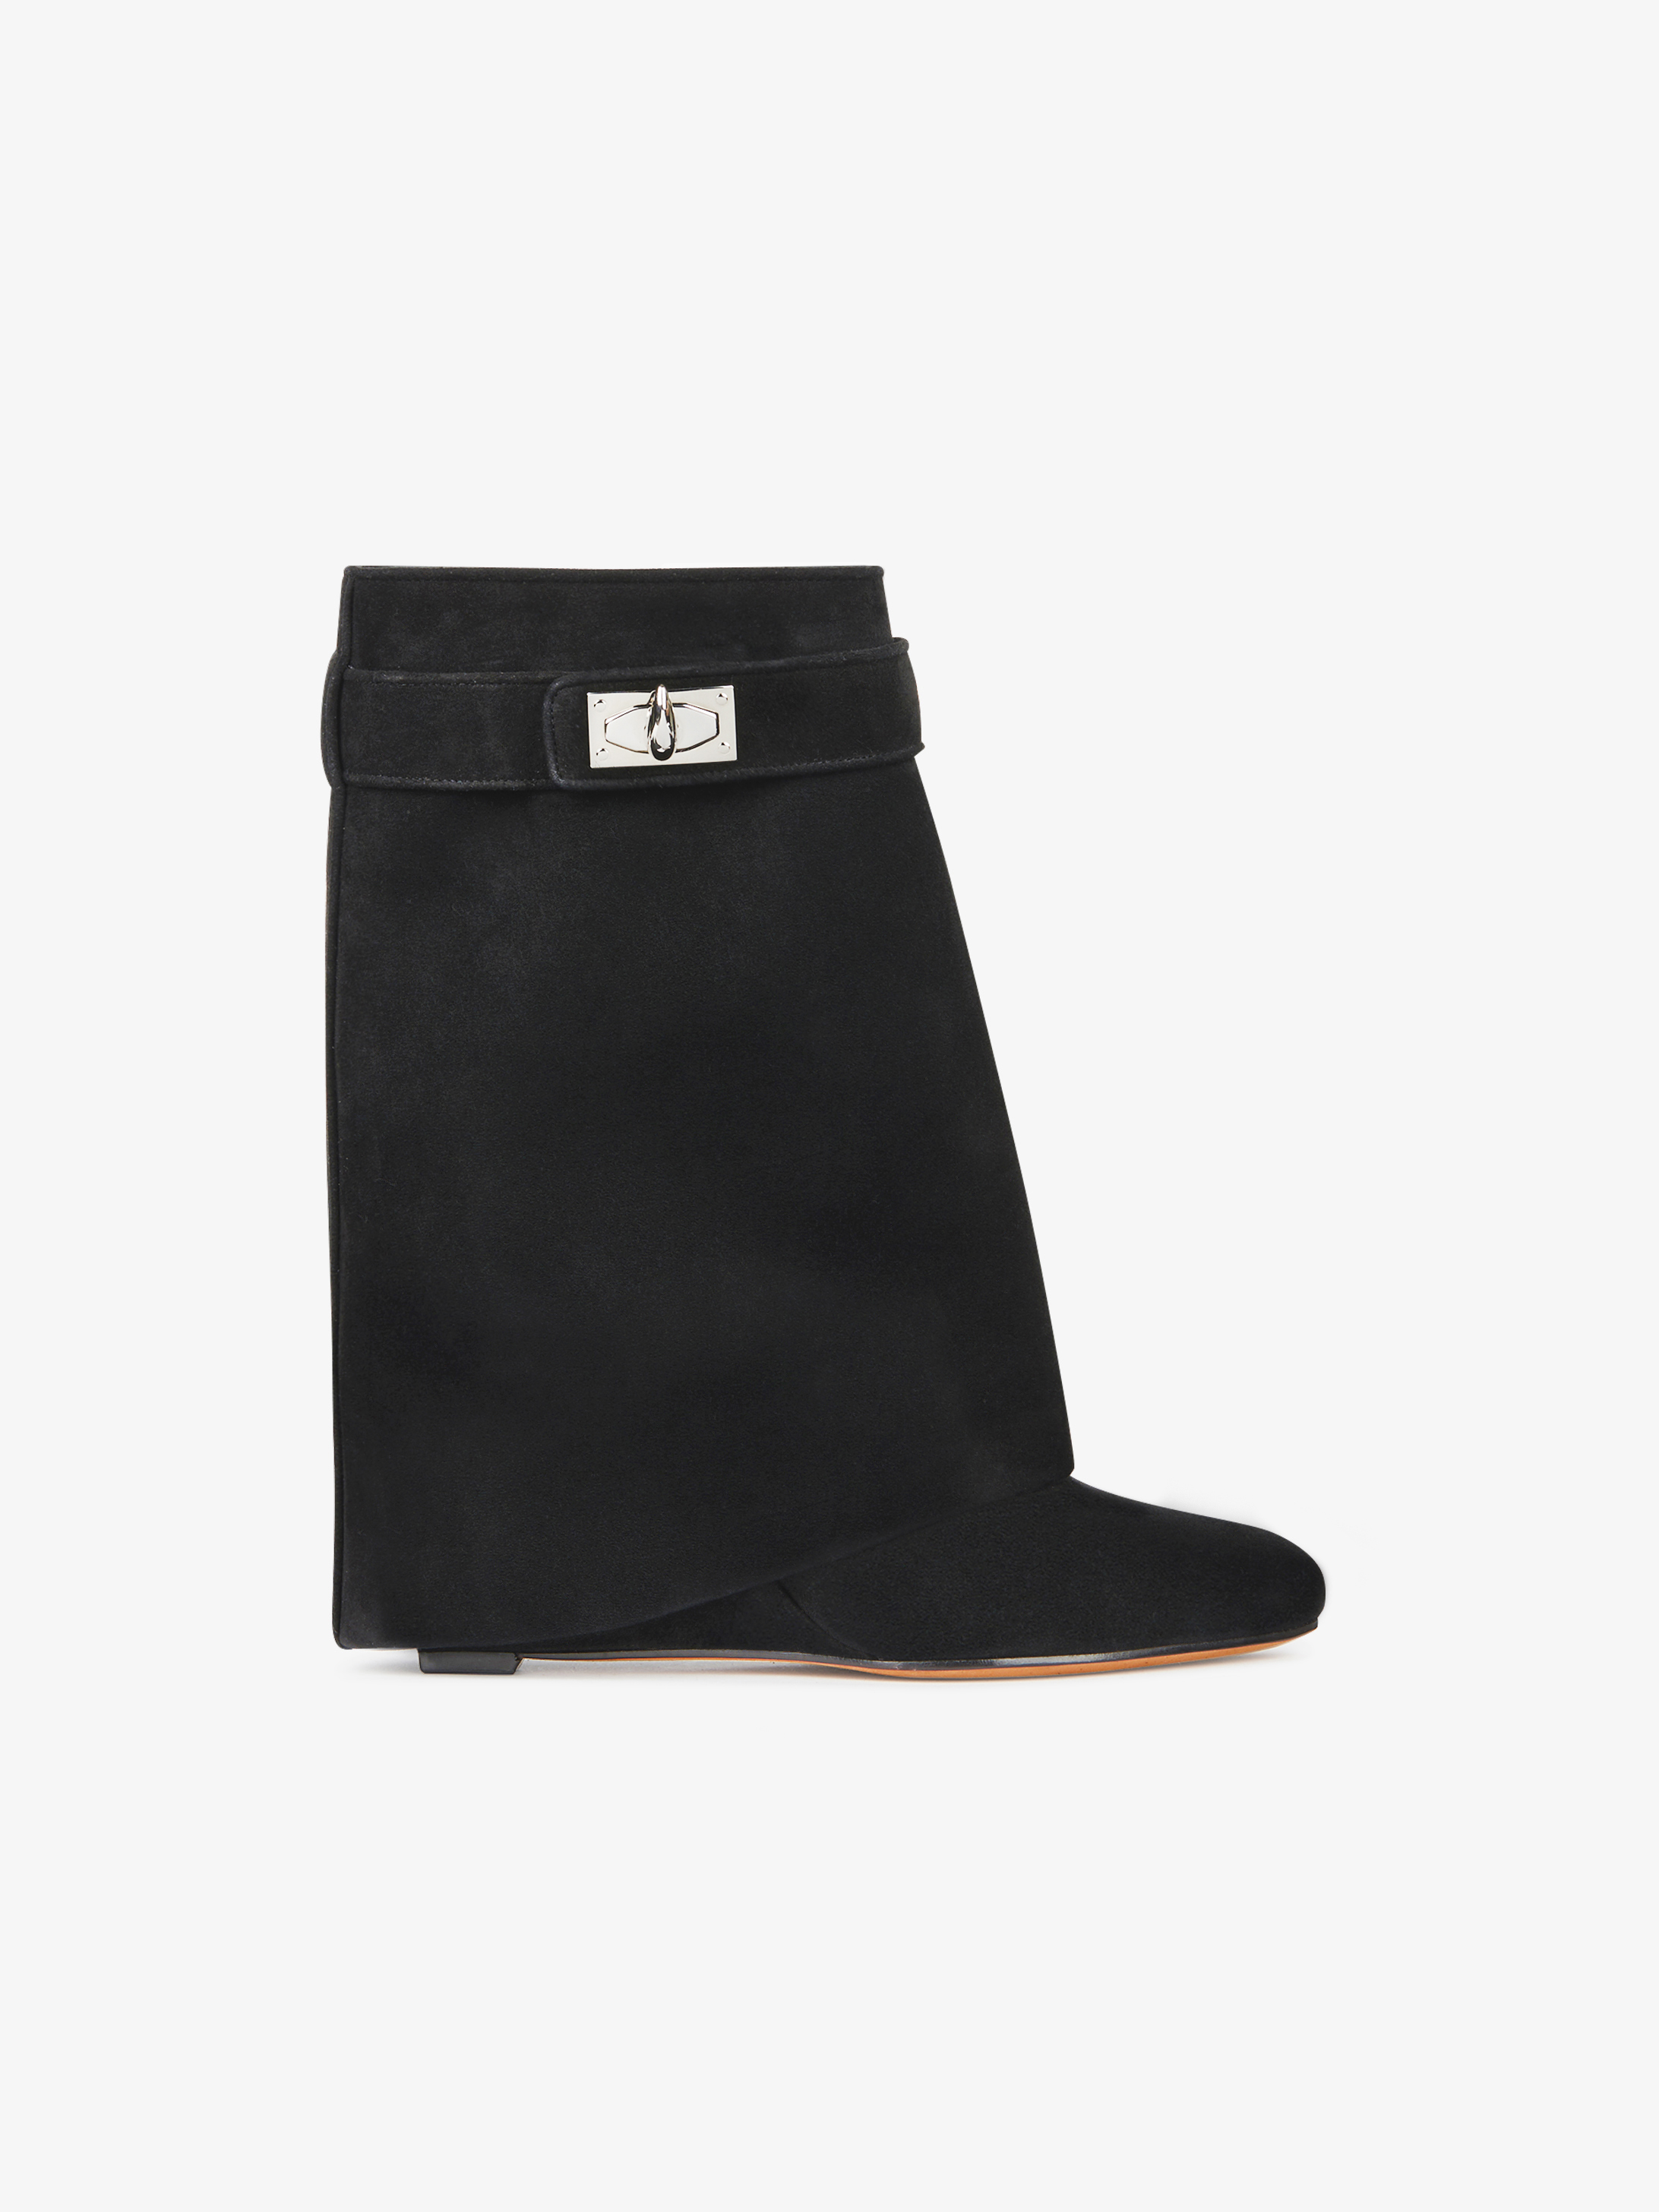 Shark Lock ankle boots in suede